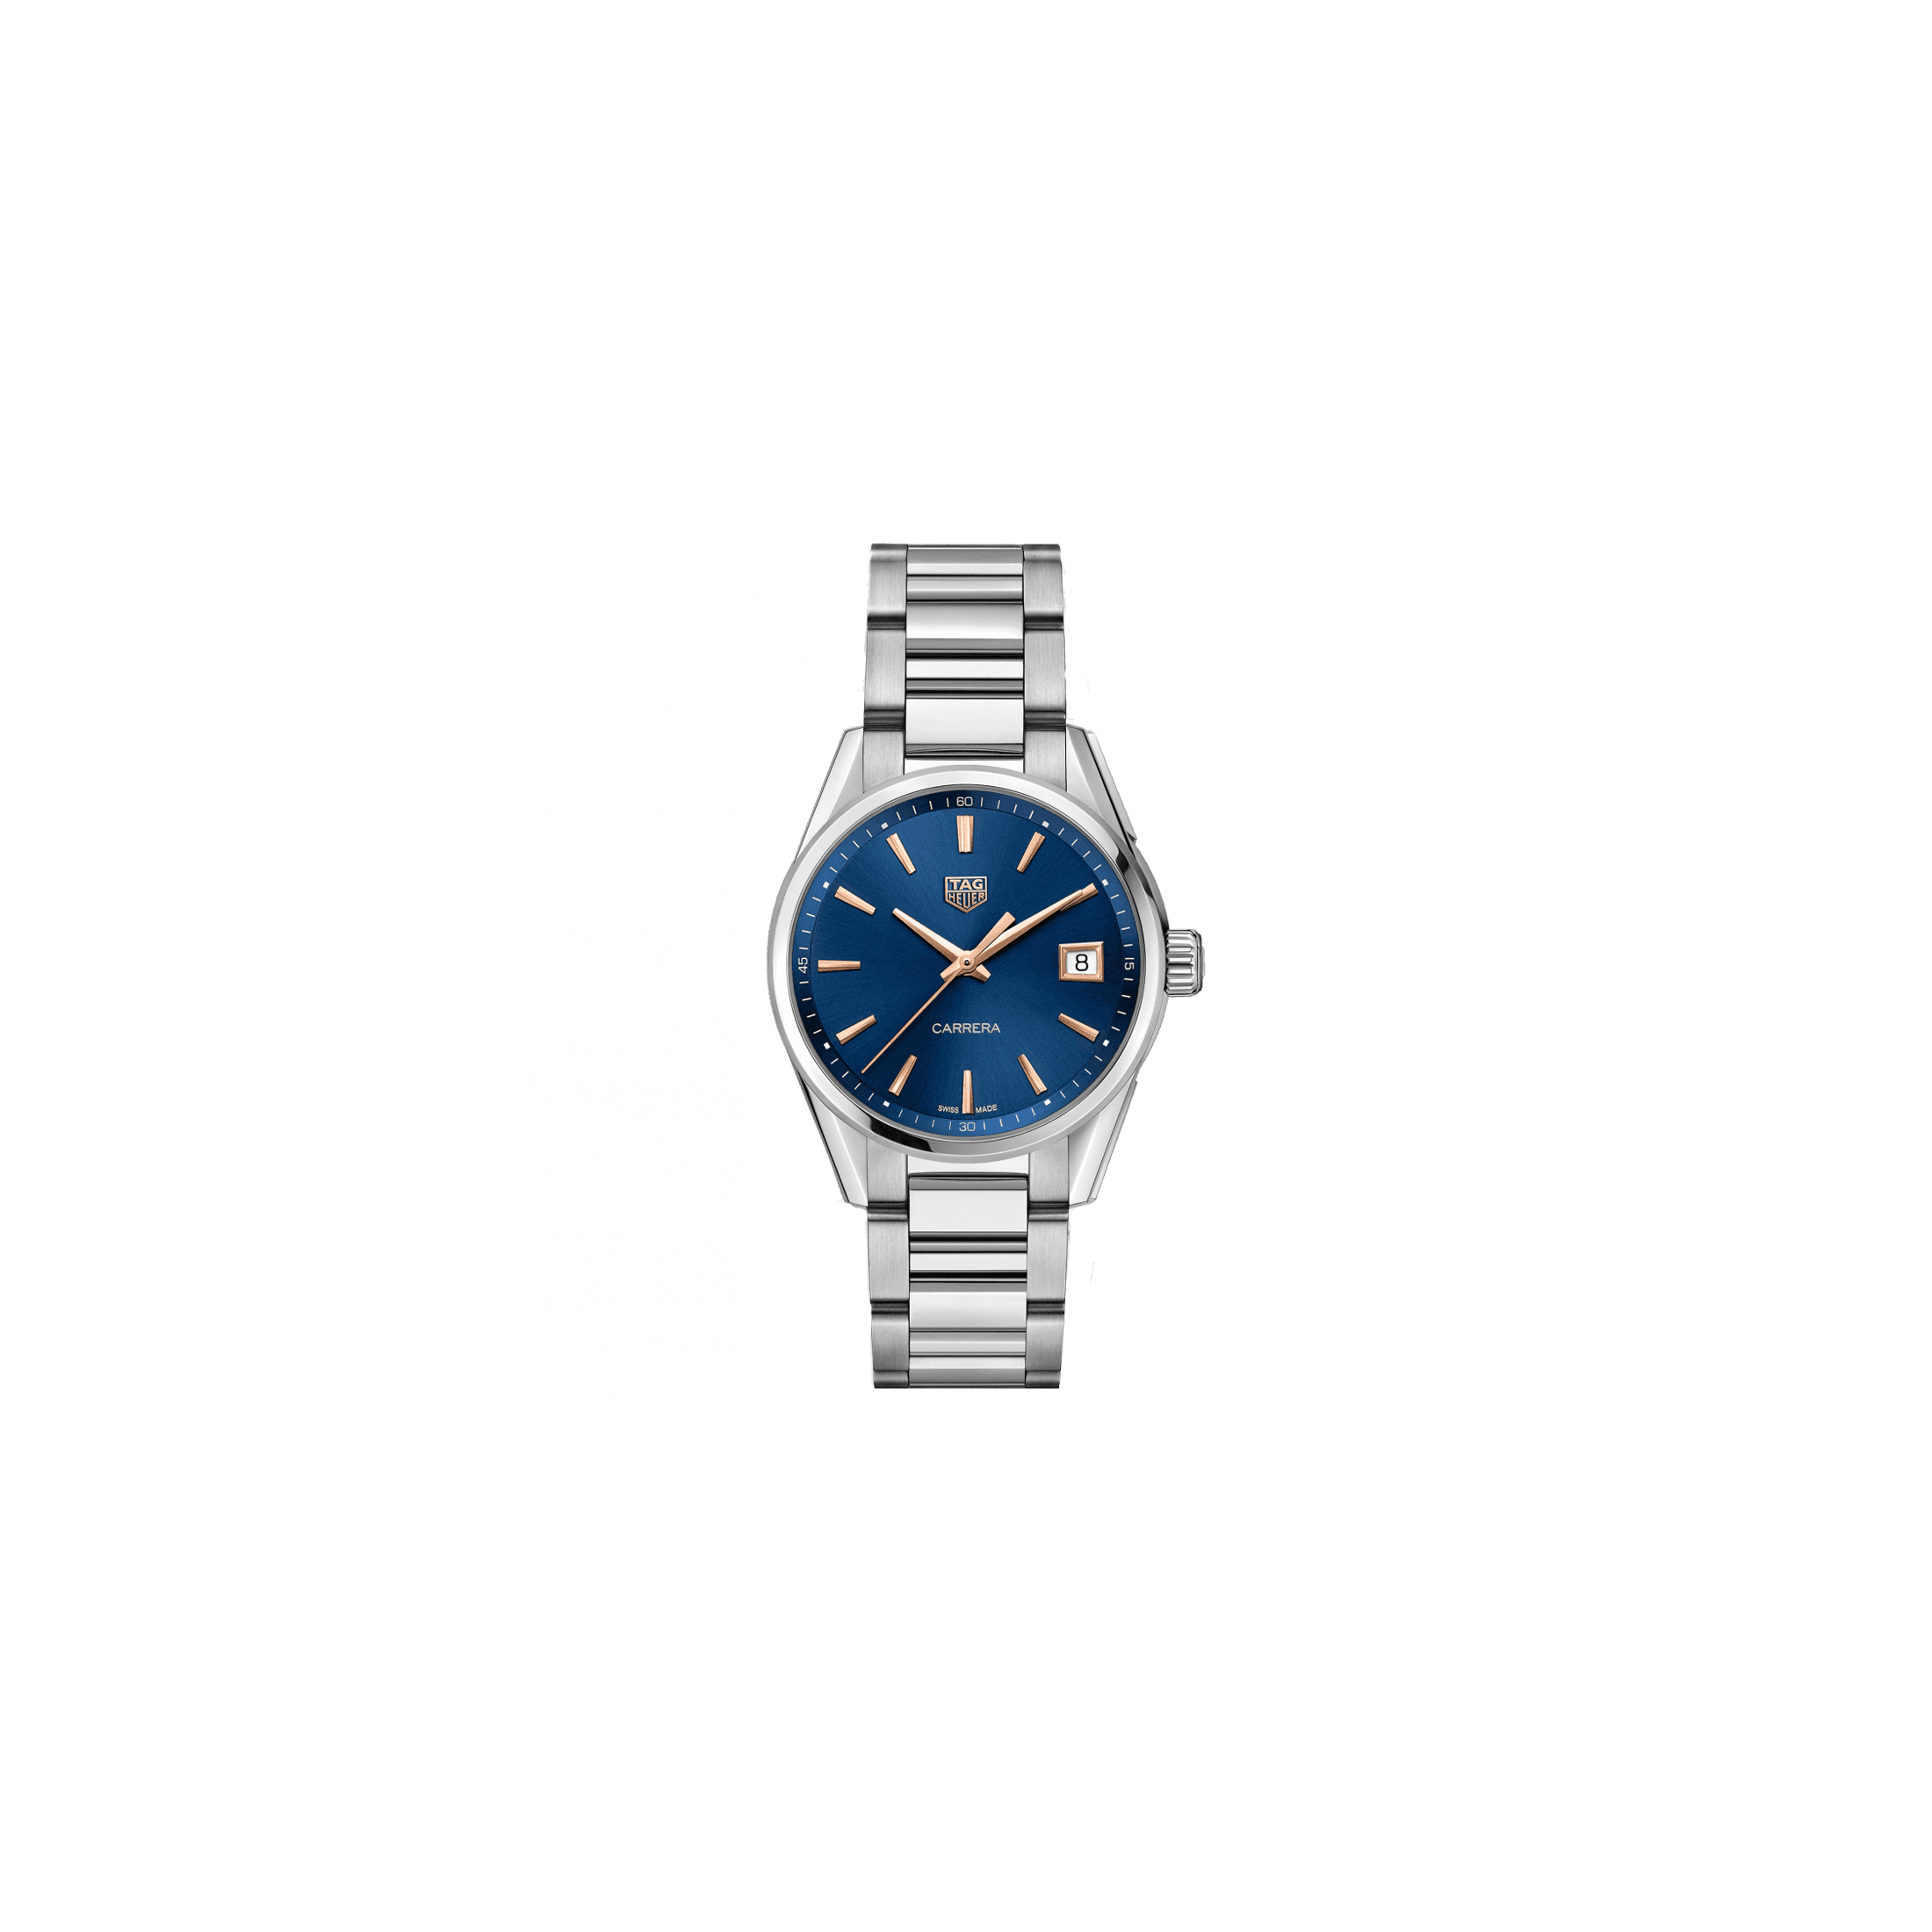 Montre TAG Heuer Carrera Lady quartz cadran bleu index or rose bracelet acier 36 mm